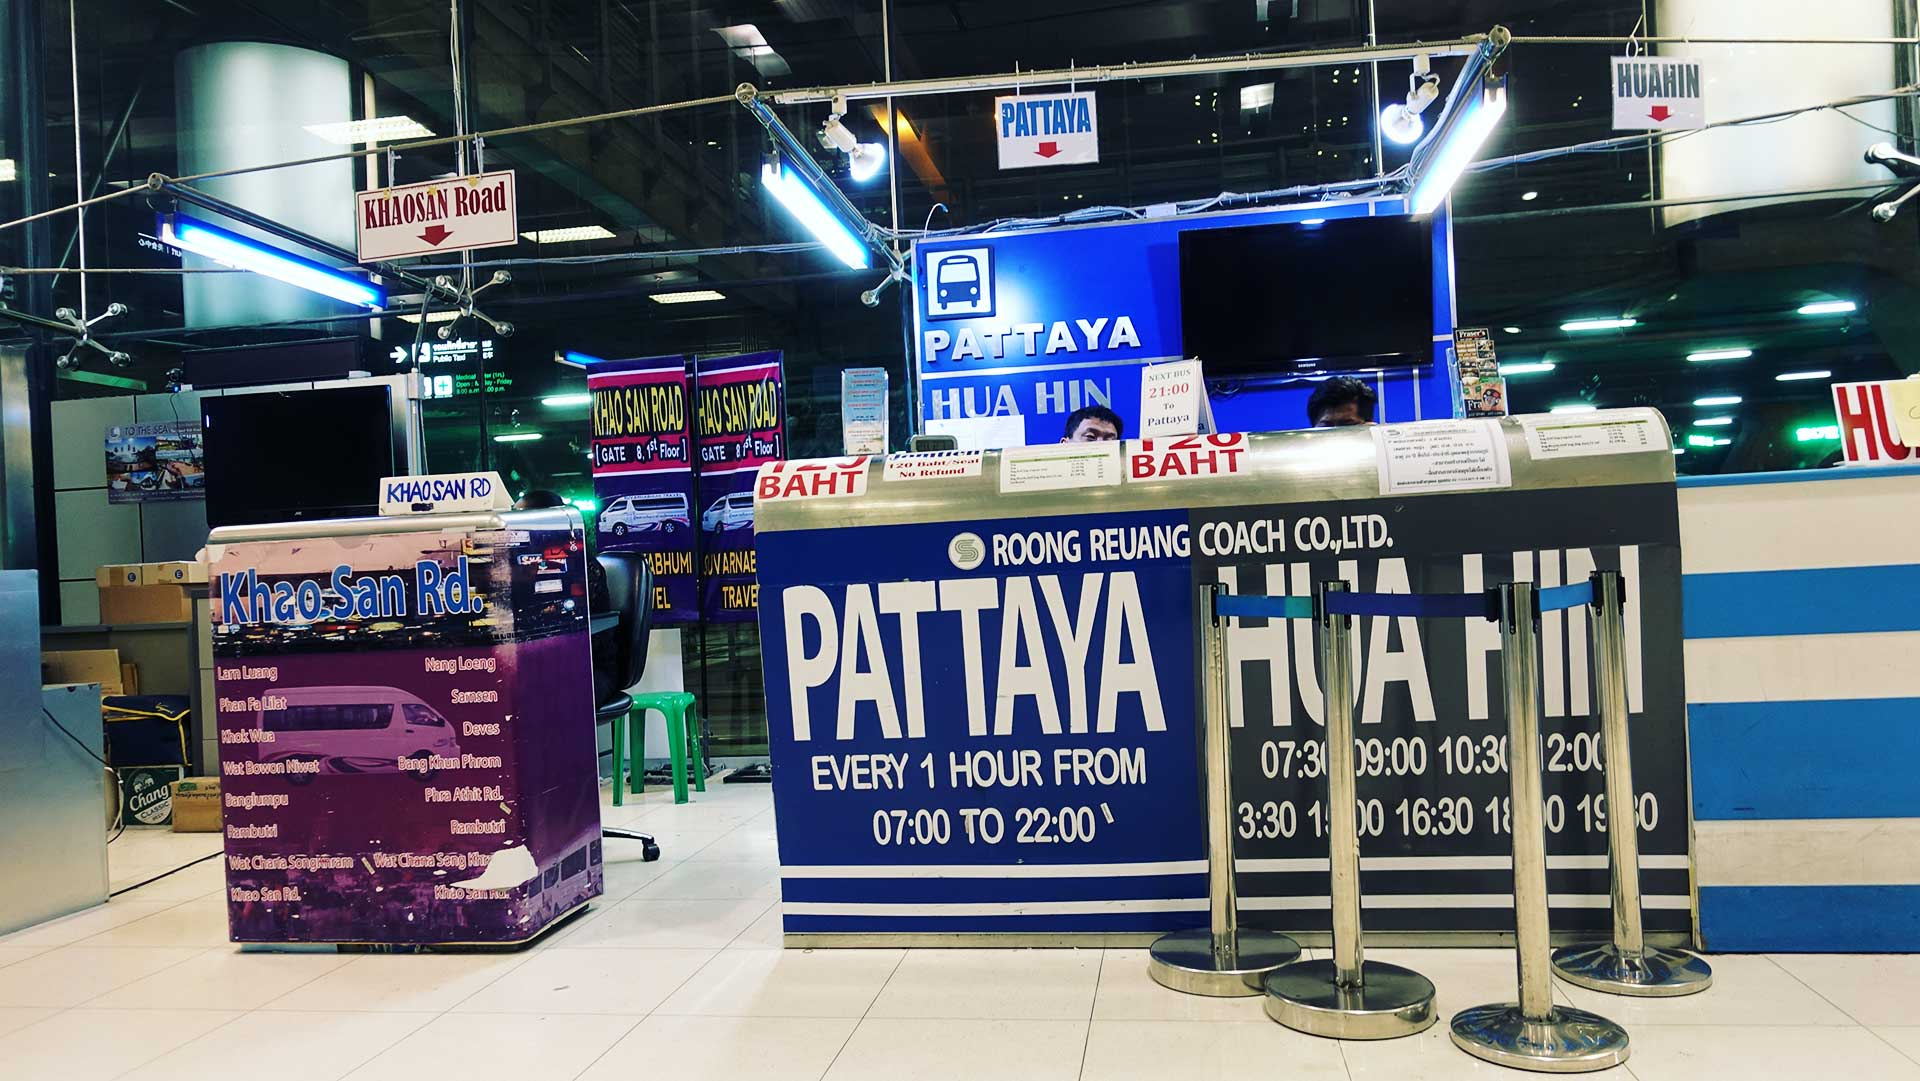 How to Get to Pattaya from Suvarnabhumi Airport for 120 Baht - Thailand